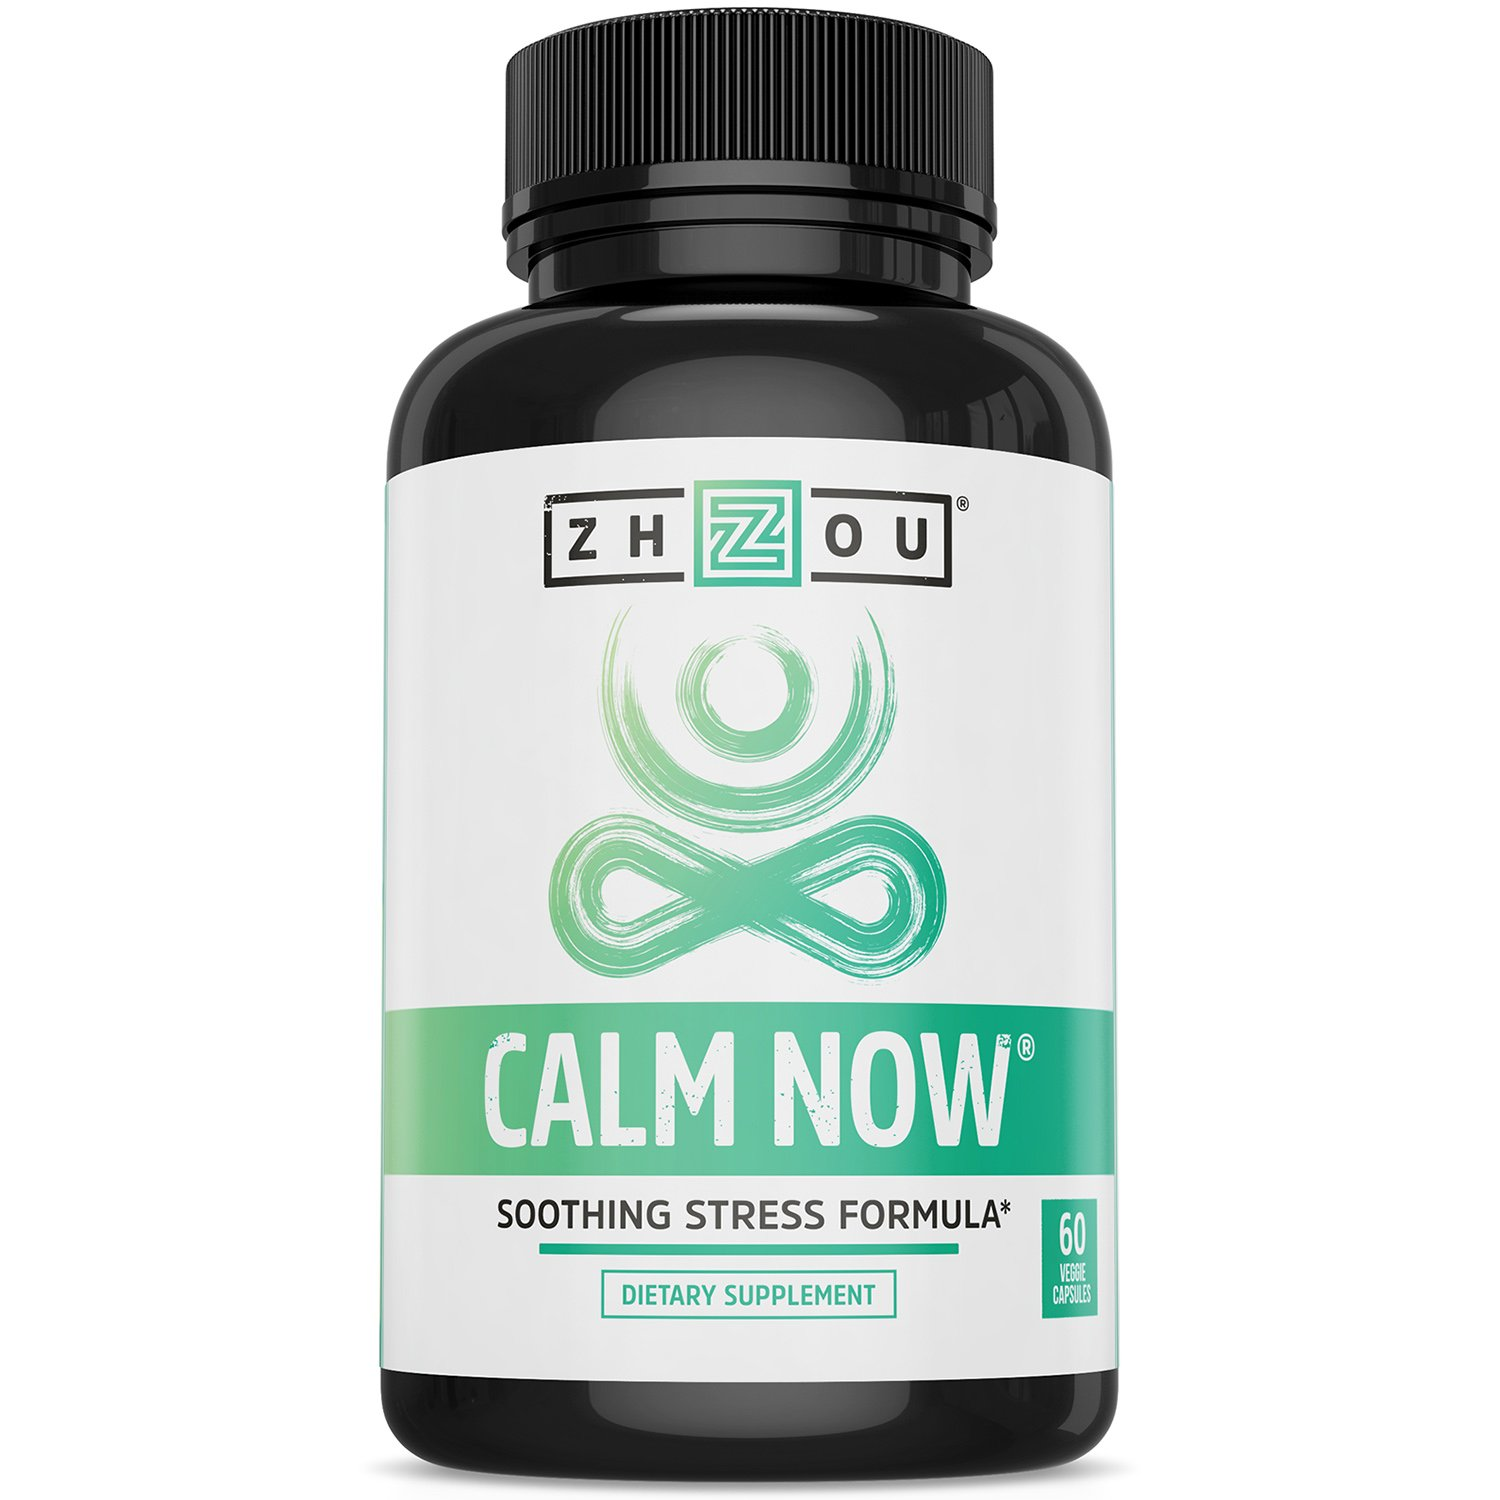 Review of CALM NOW Soothing Stress Support Supplement, Herbal Blend Crafted To Keep Busy Minds Relaxed